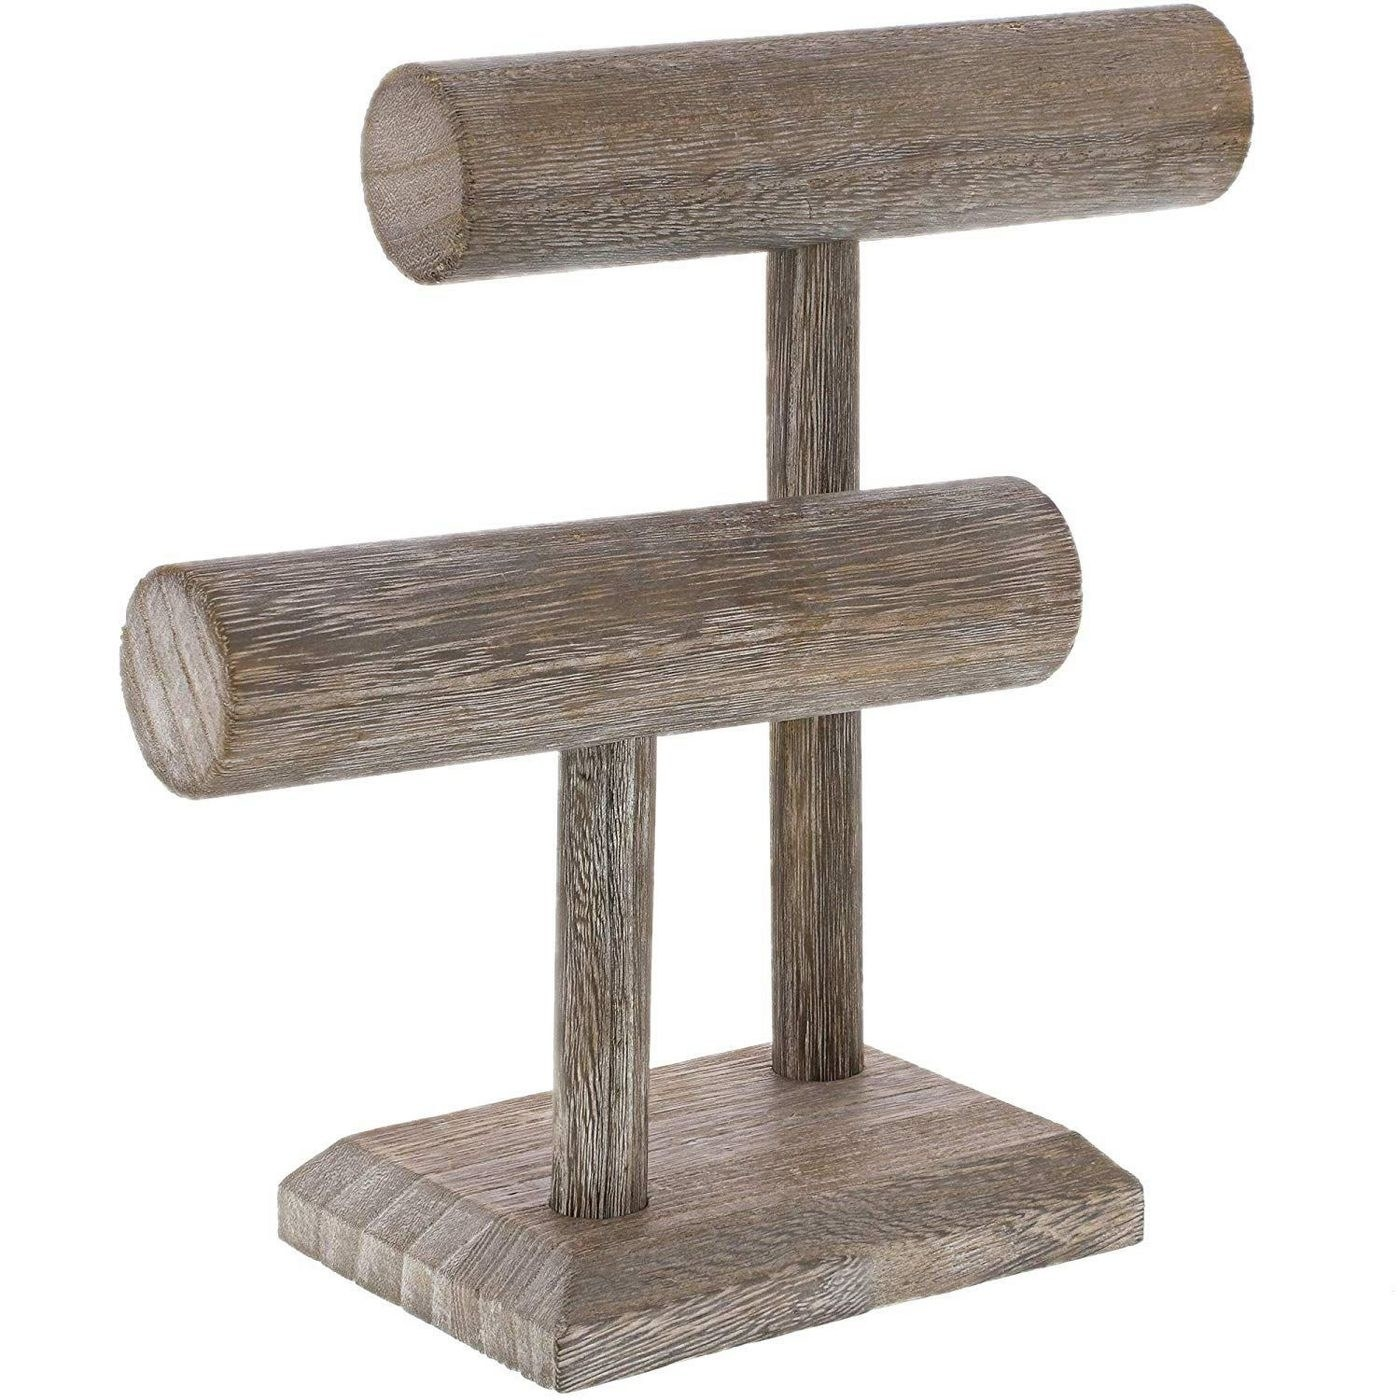 The stand, which has a rectangular base, two slim vertical poles and, hanging from them, two thick horizontal poles